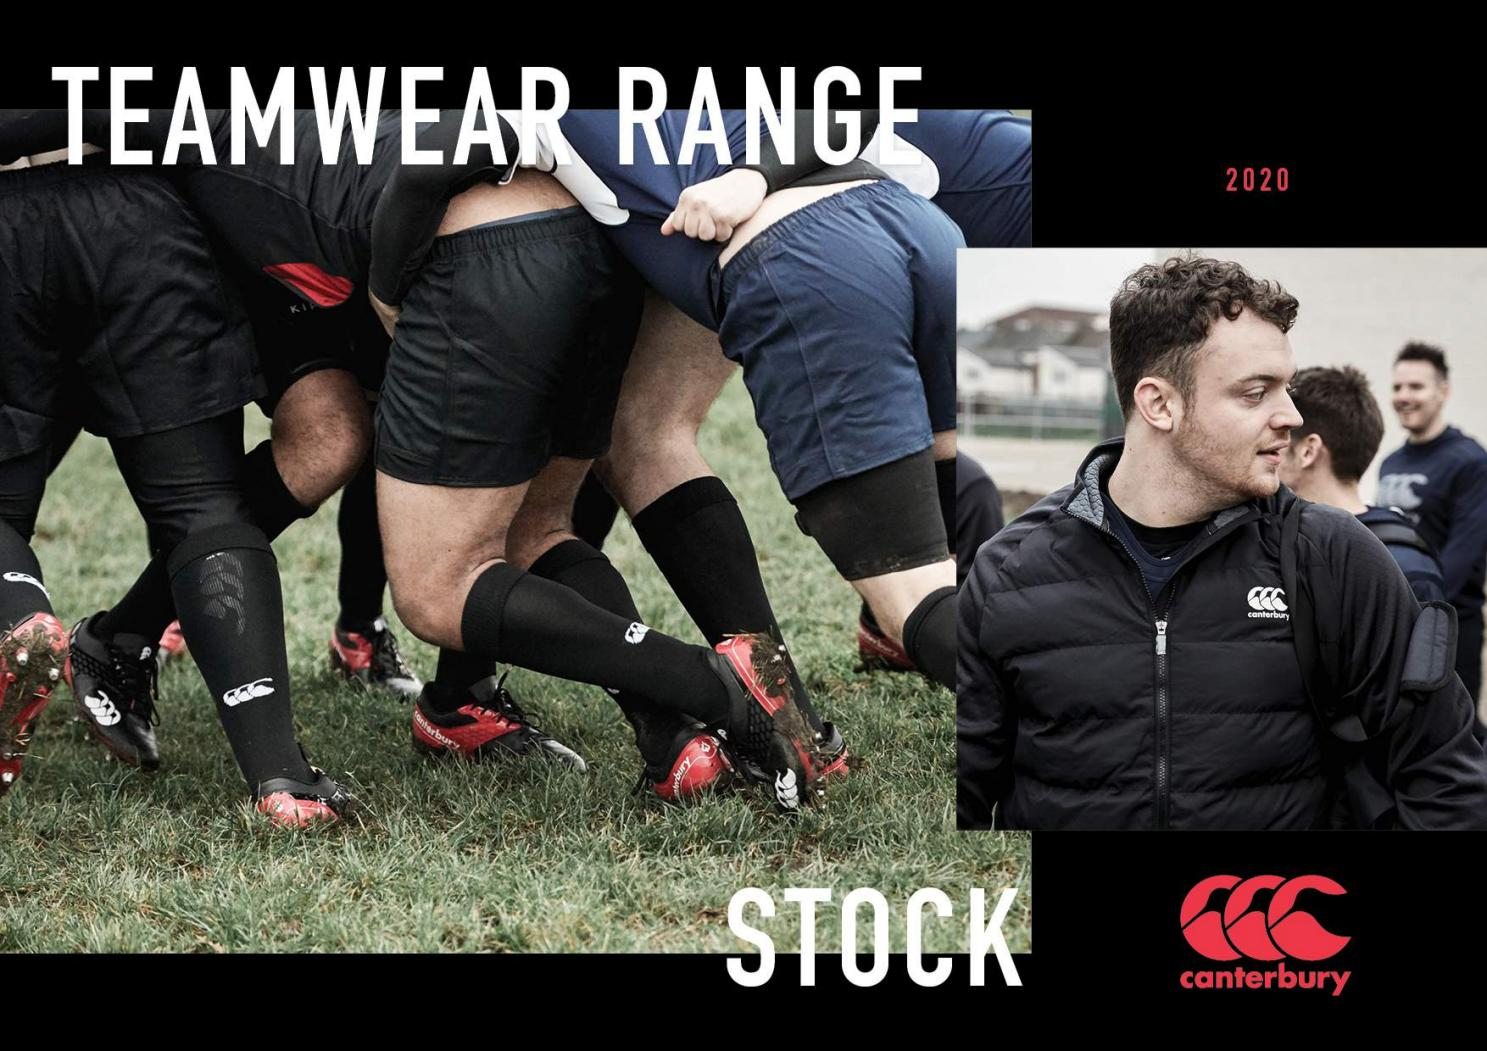 Canterbury Cleats | www.therugbyshop.com